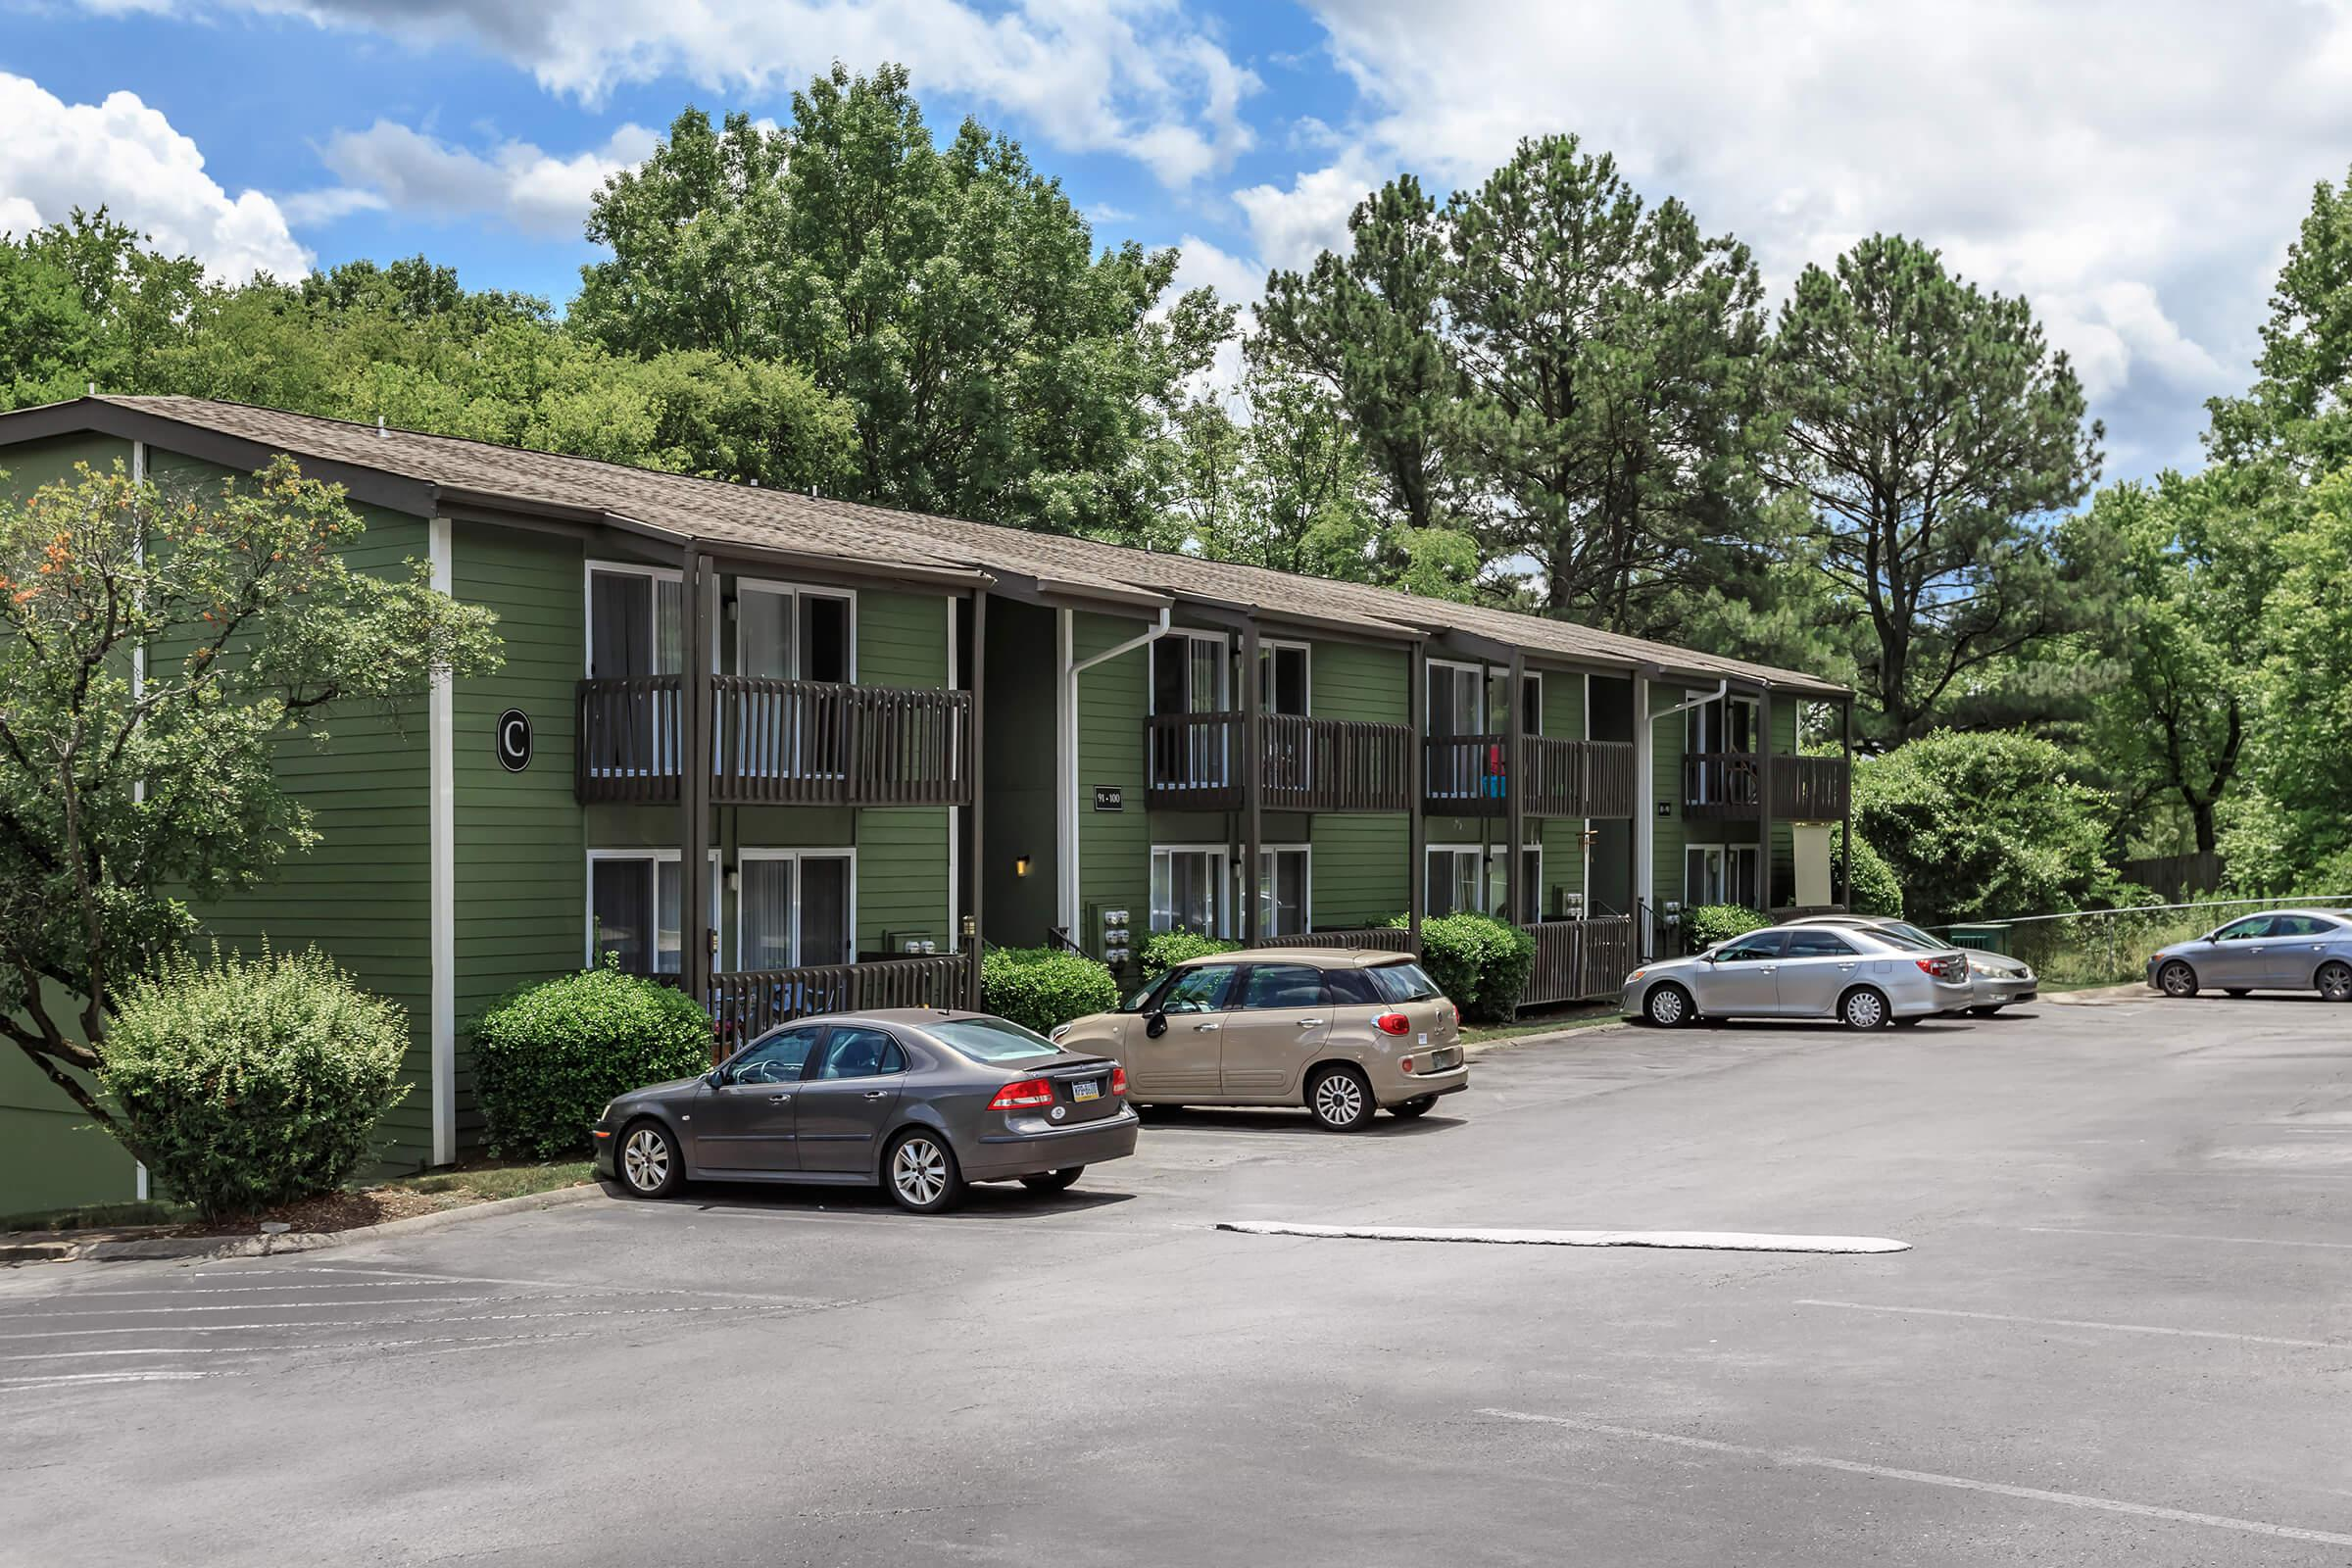 plenty of parking space at Sunrise Apartments in Nashville, Tennessee